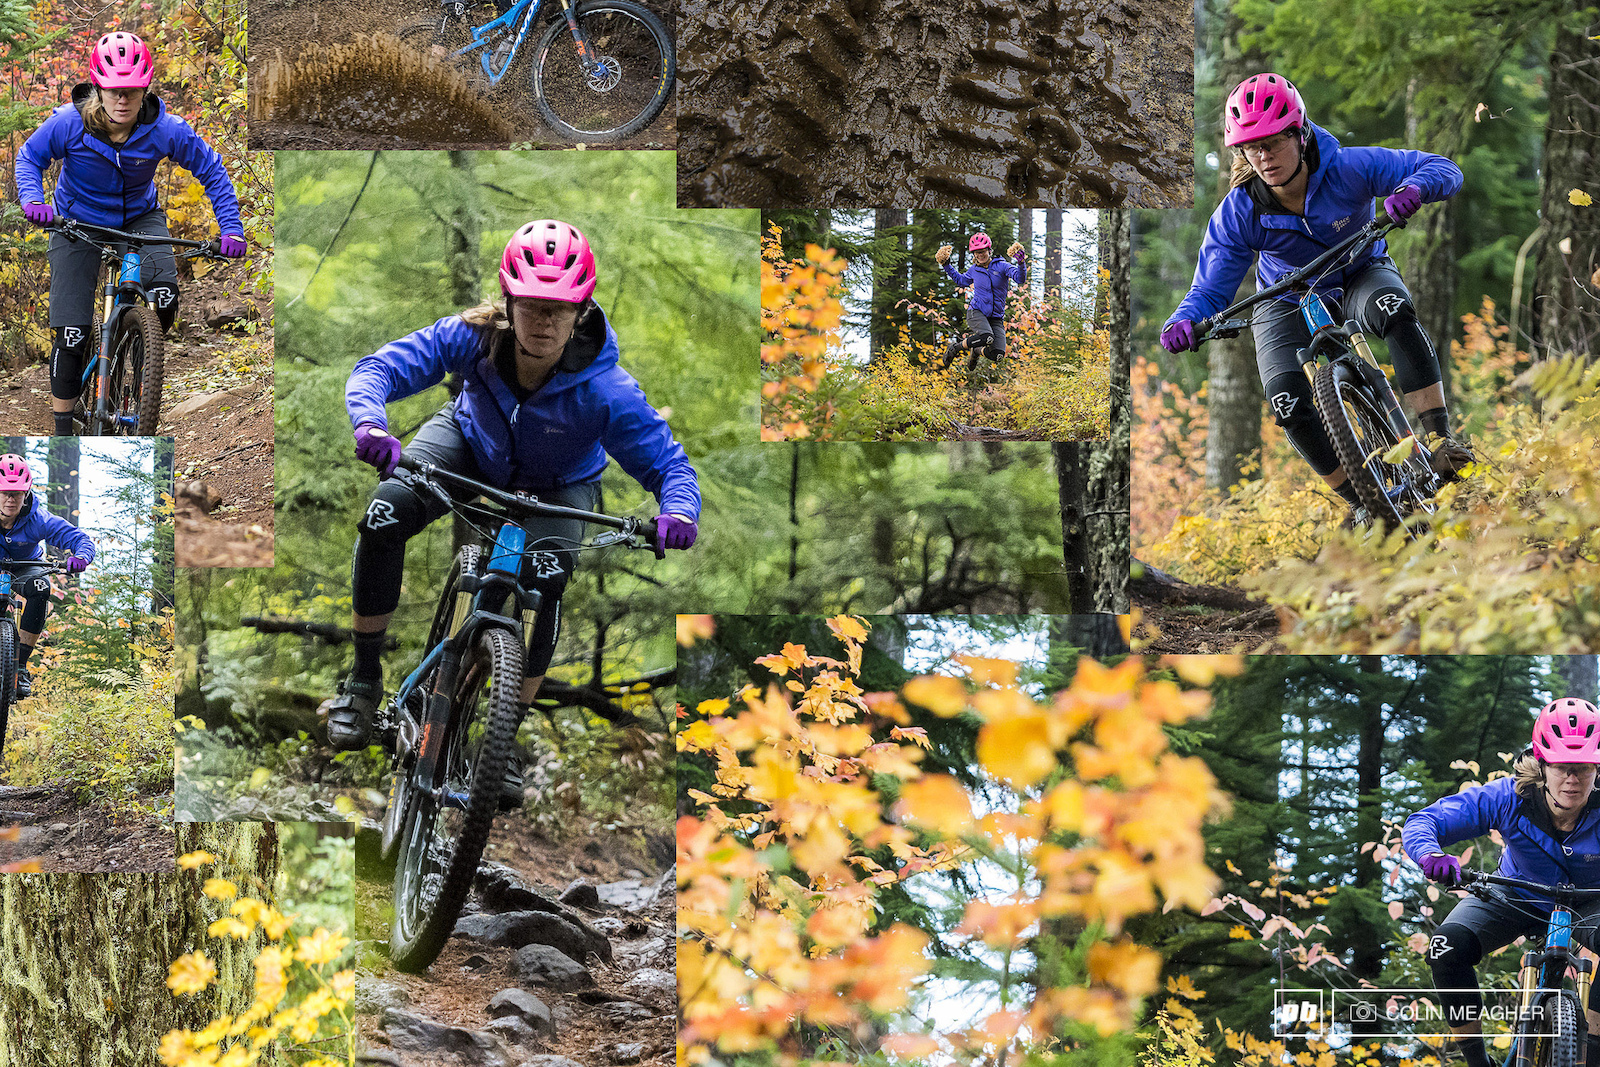 The Raceface Scout Softshell and DIY shorts working to keep Nikki Hollatz warm and dry on a fall mission in Post Canyon.